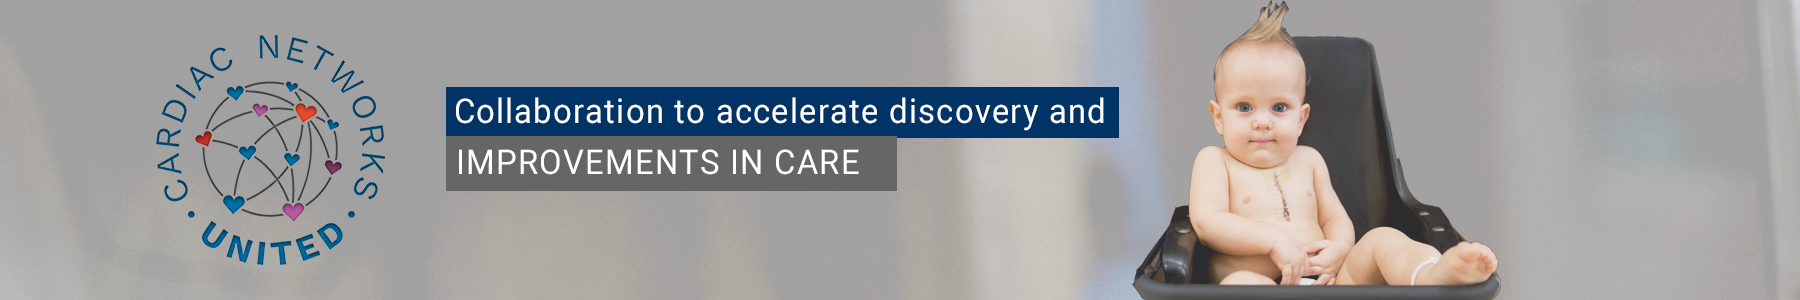 Collaboration to accelerate discovery and improvements in care